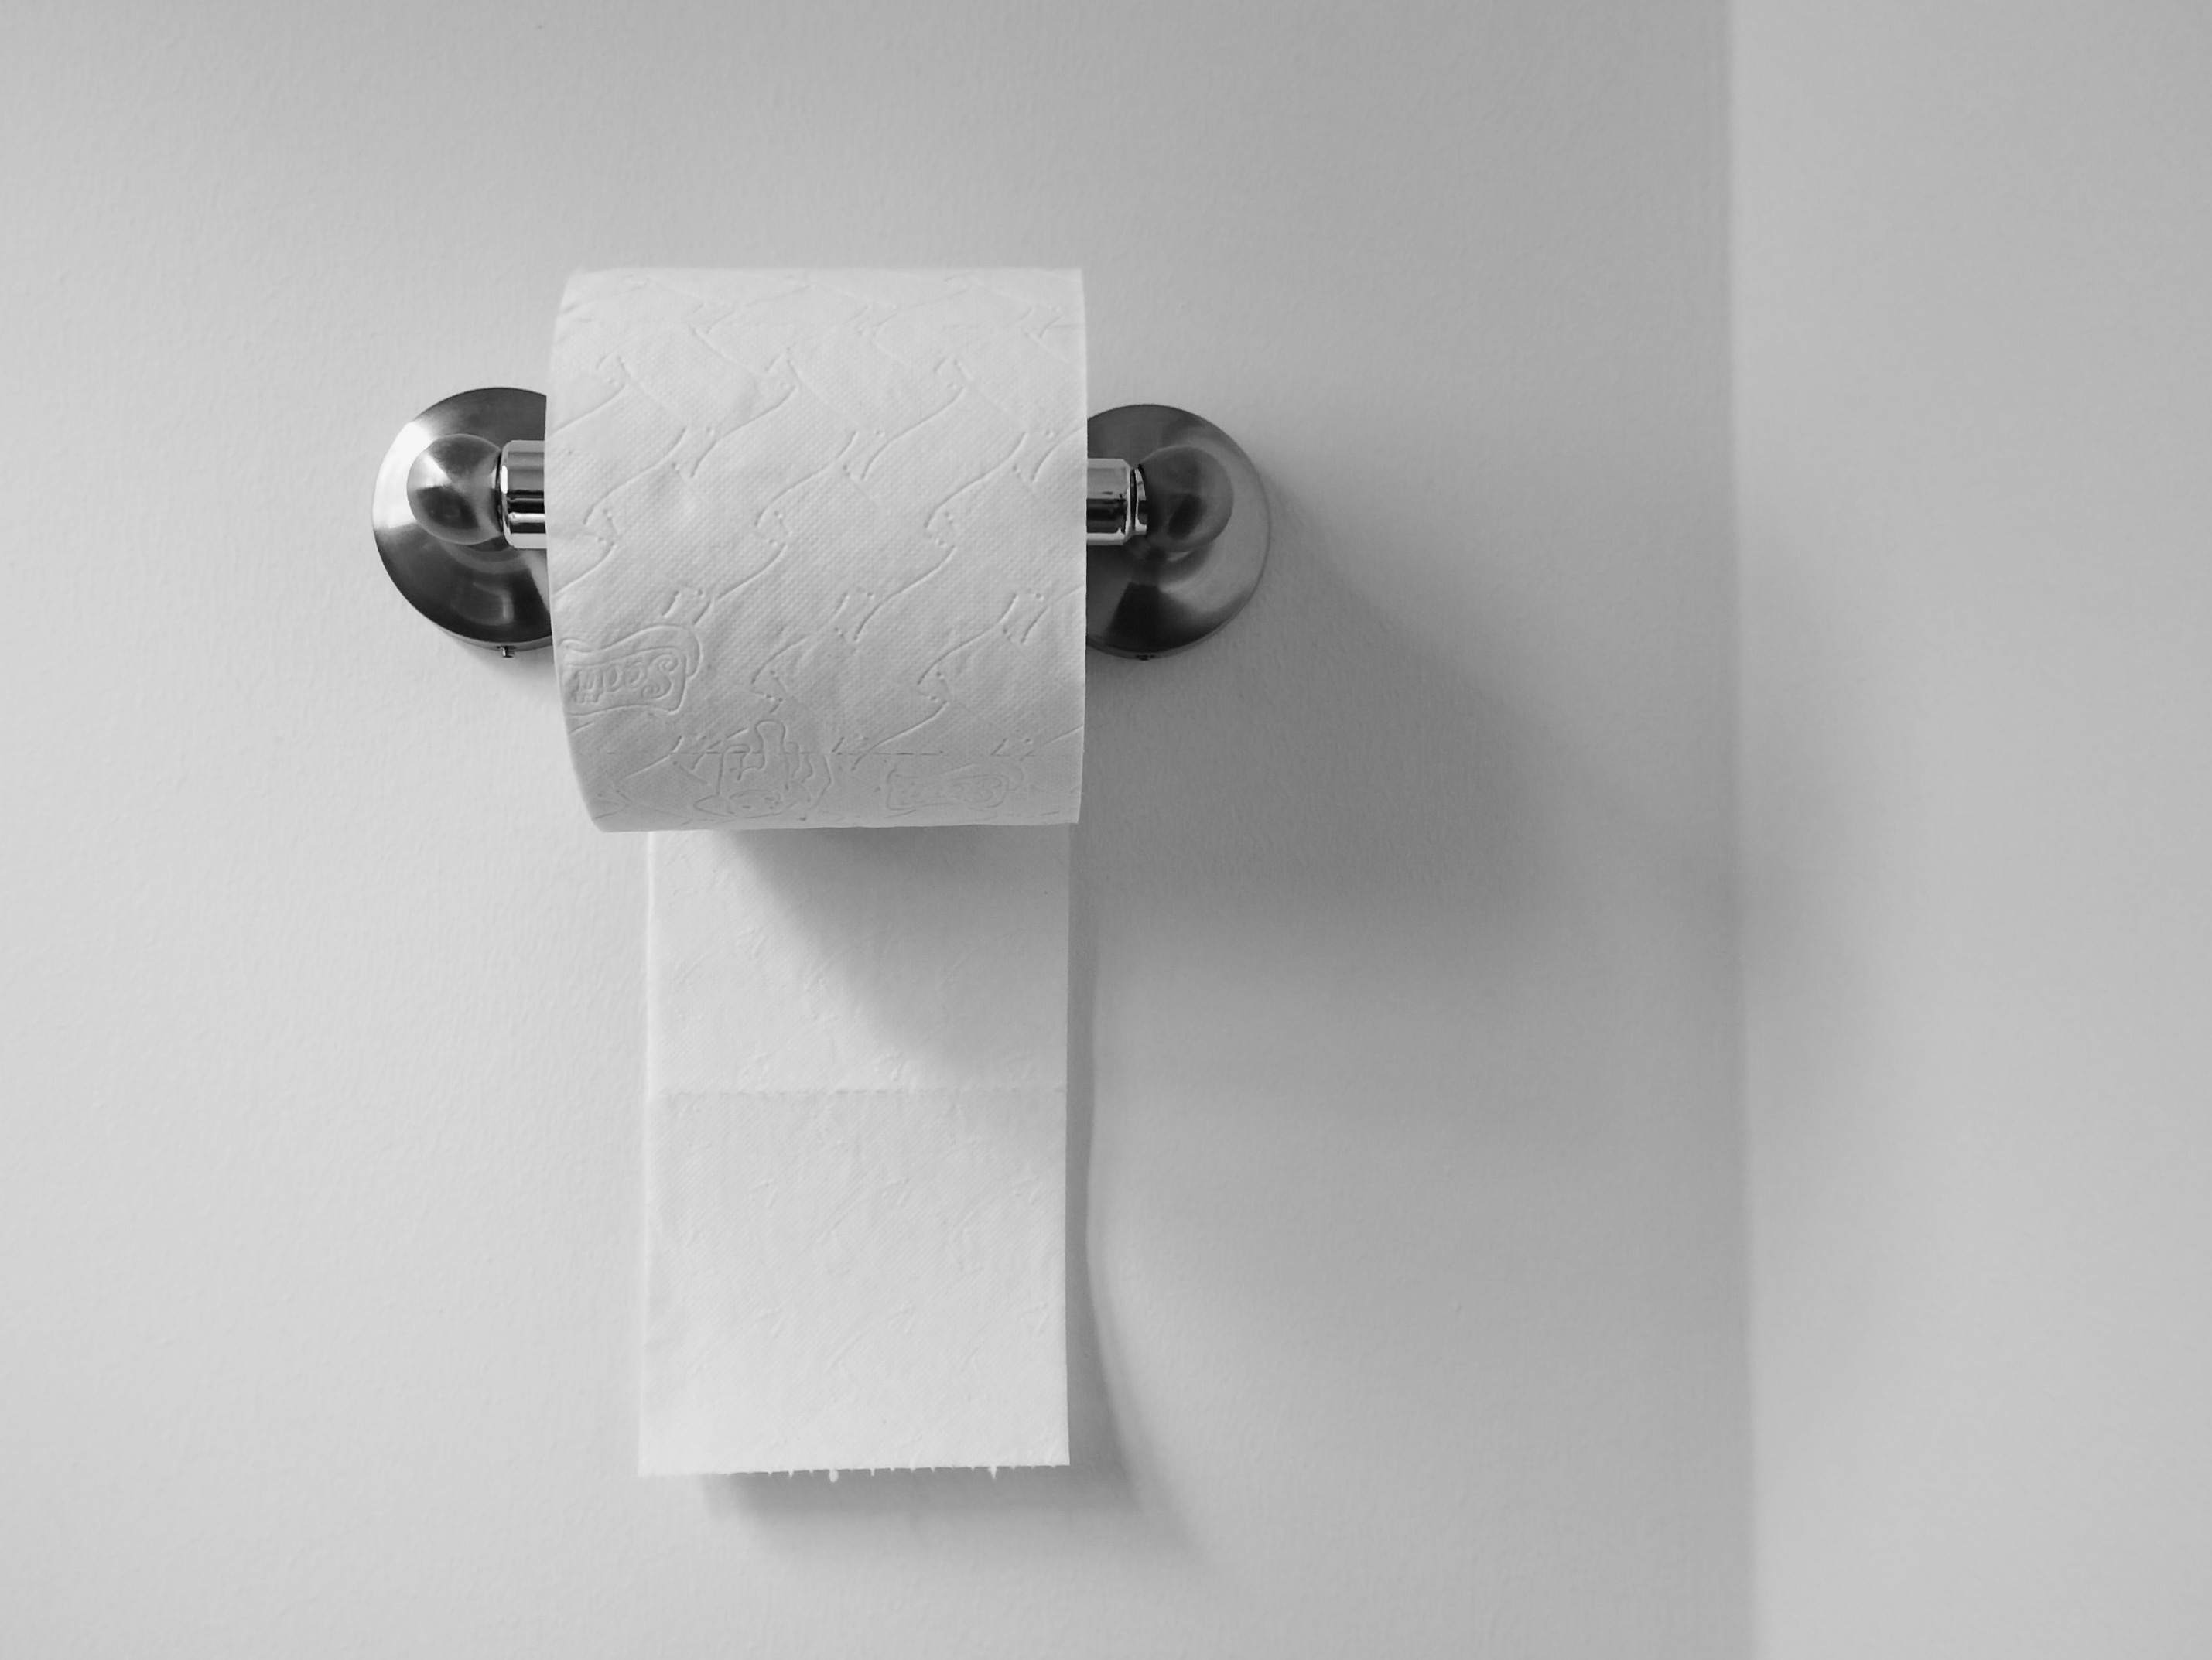 roll of toilet paper on wall